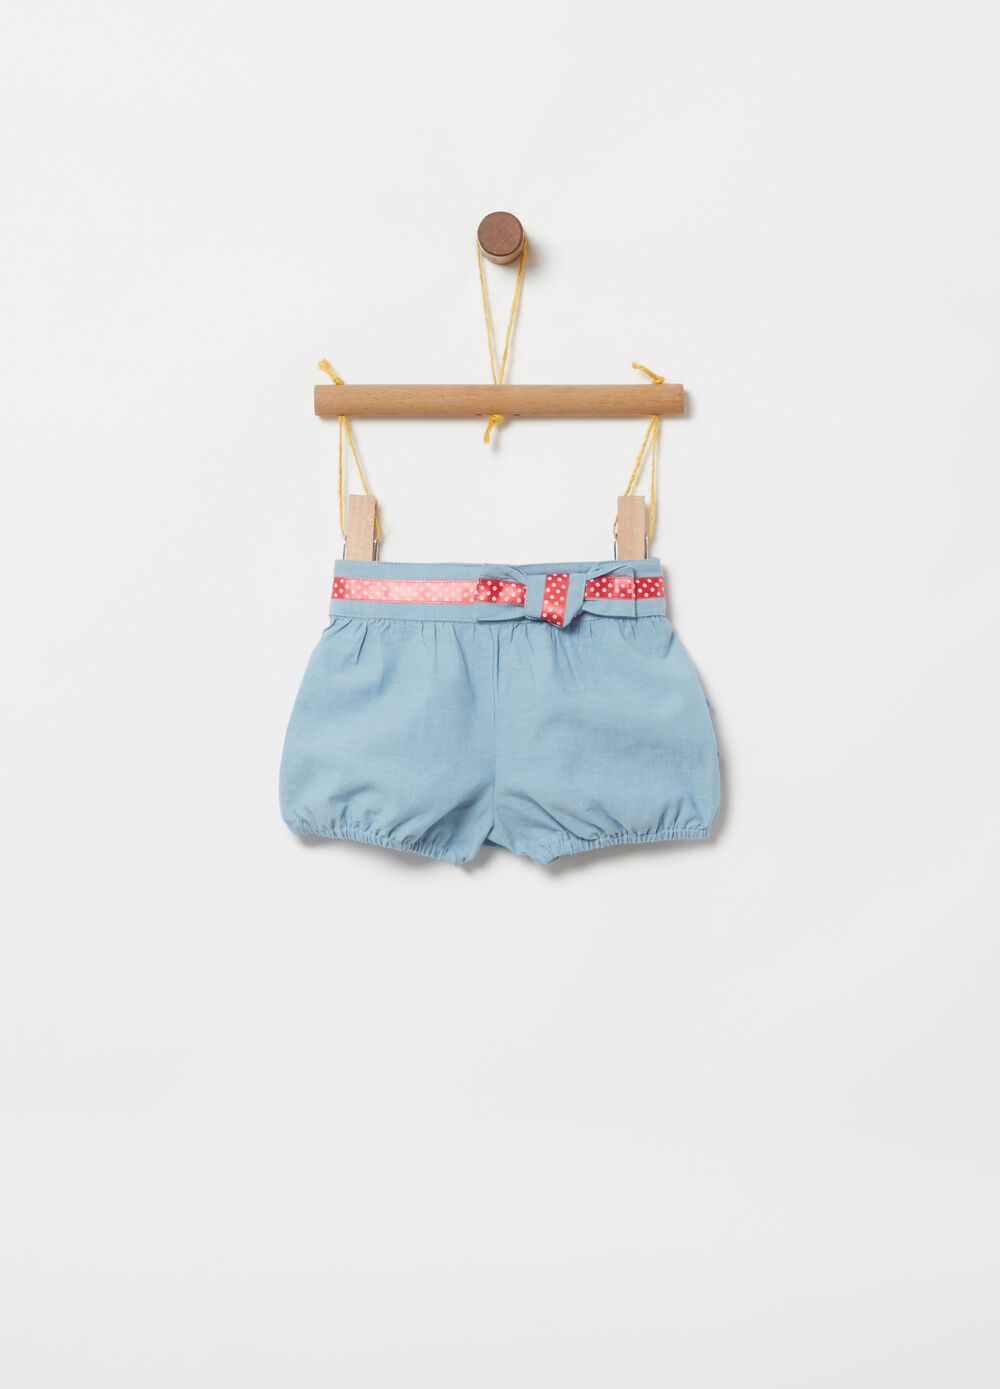 ***Better Cotton Initiative trousers in chambray sash